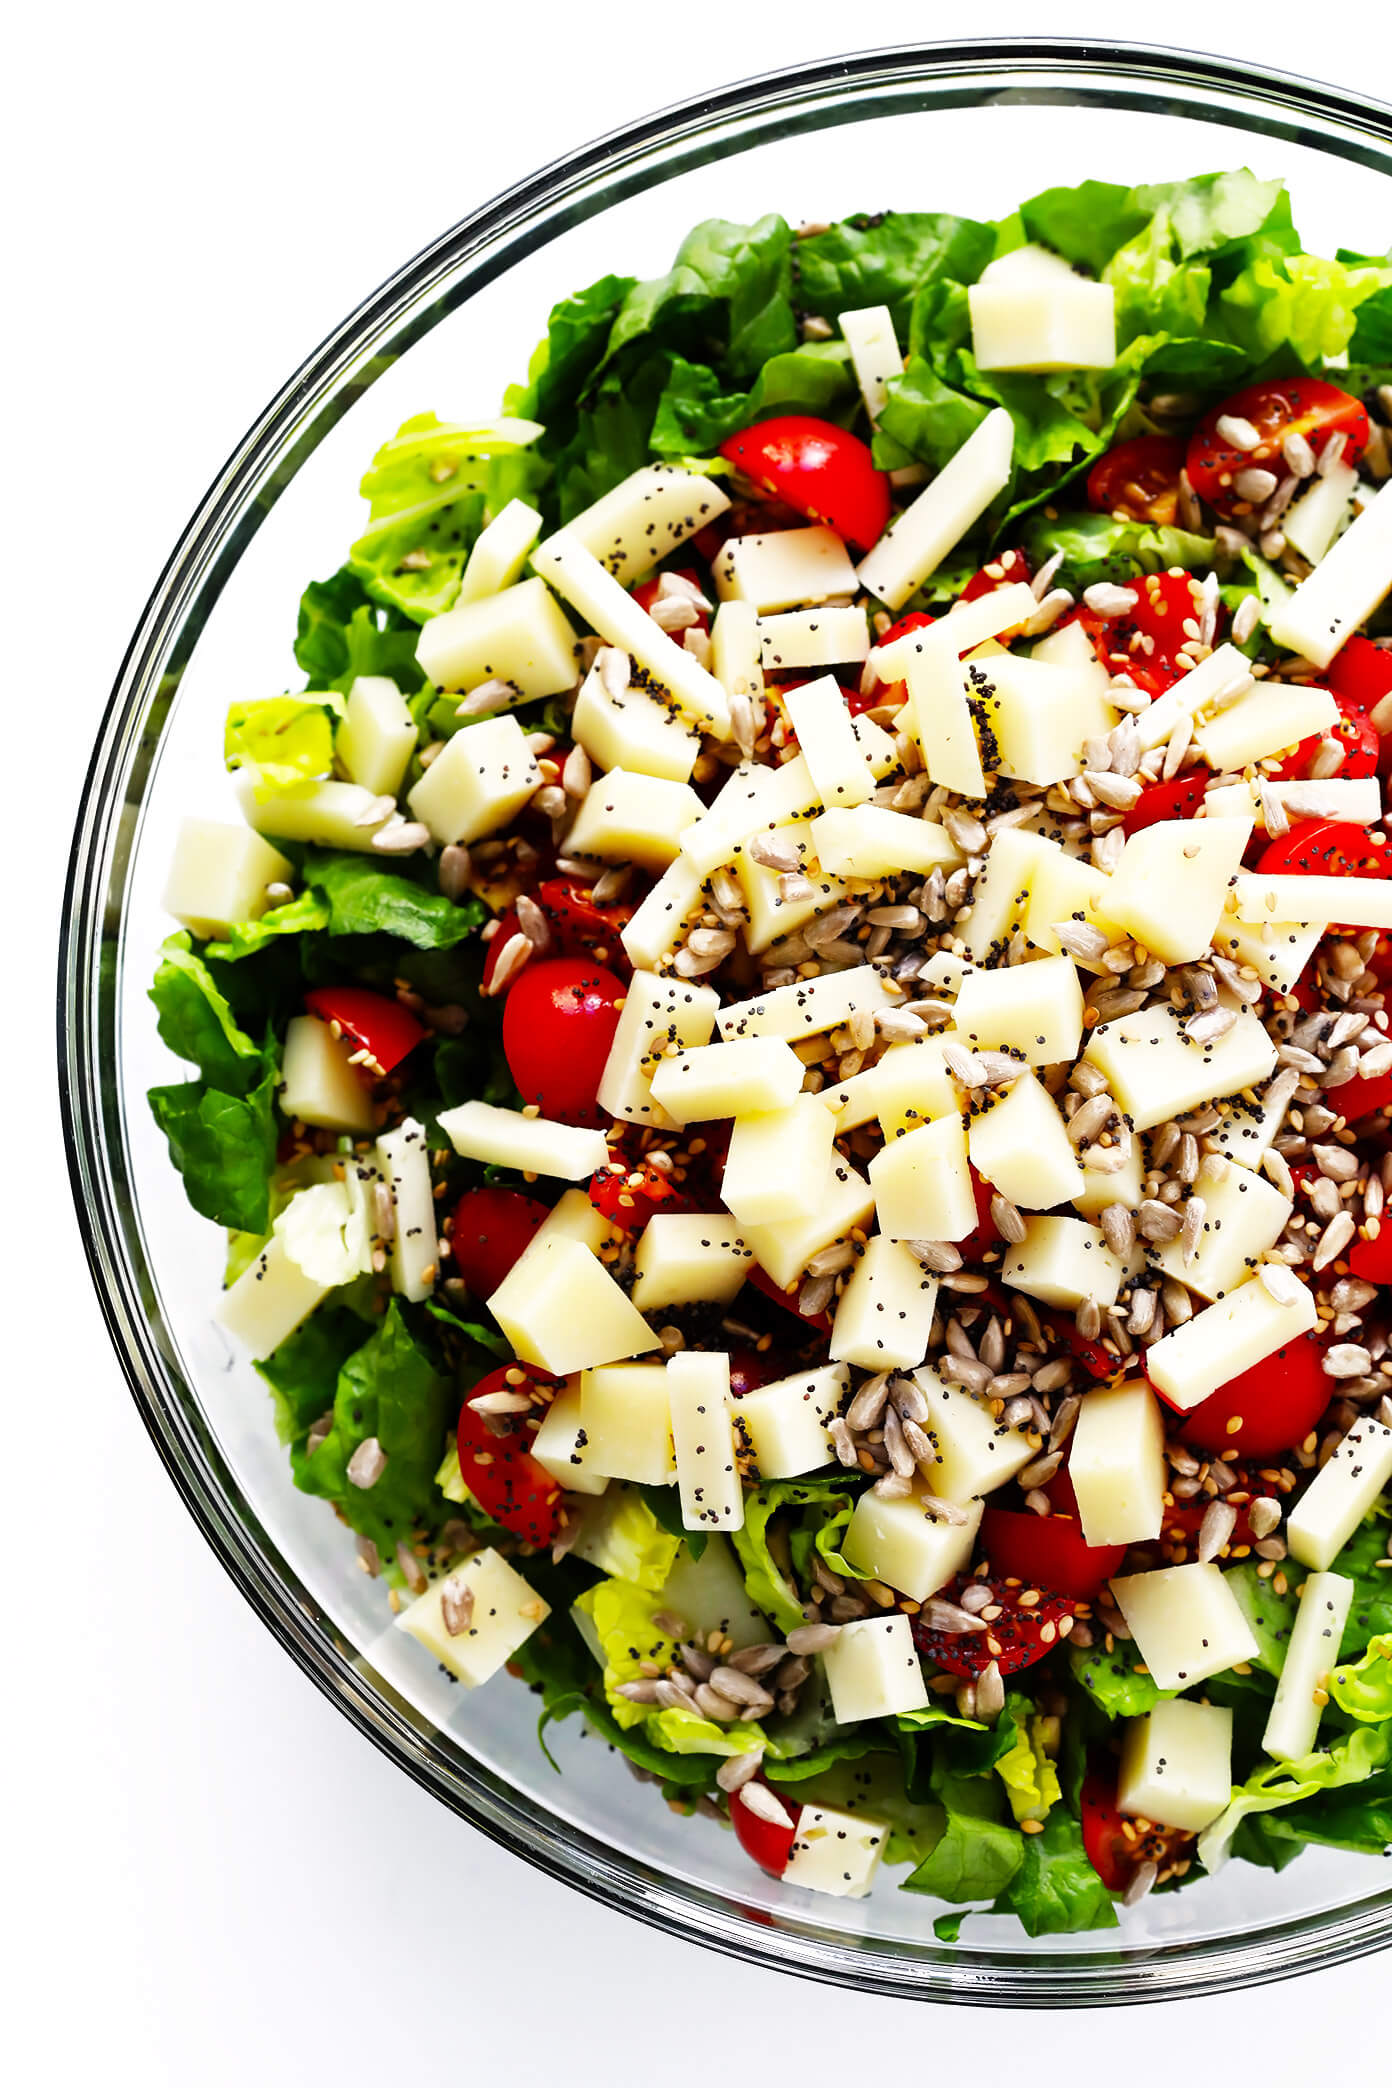 Unforgettable Italian Chopped Salad Ingredients